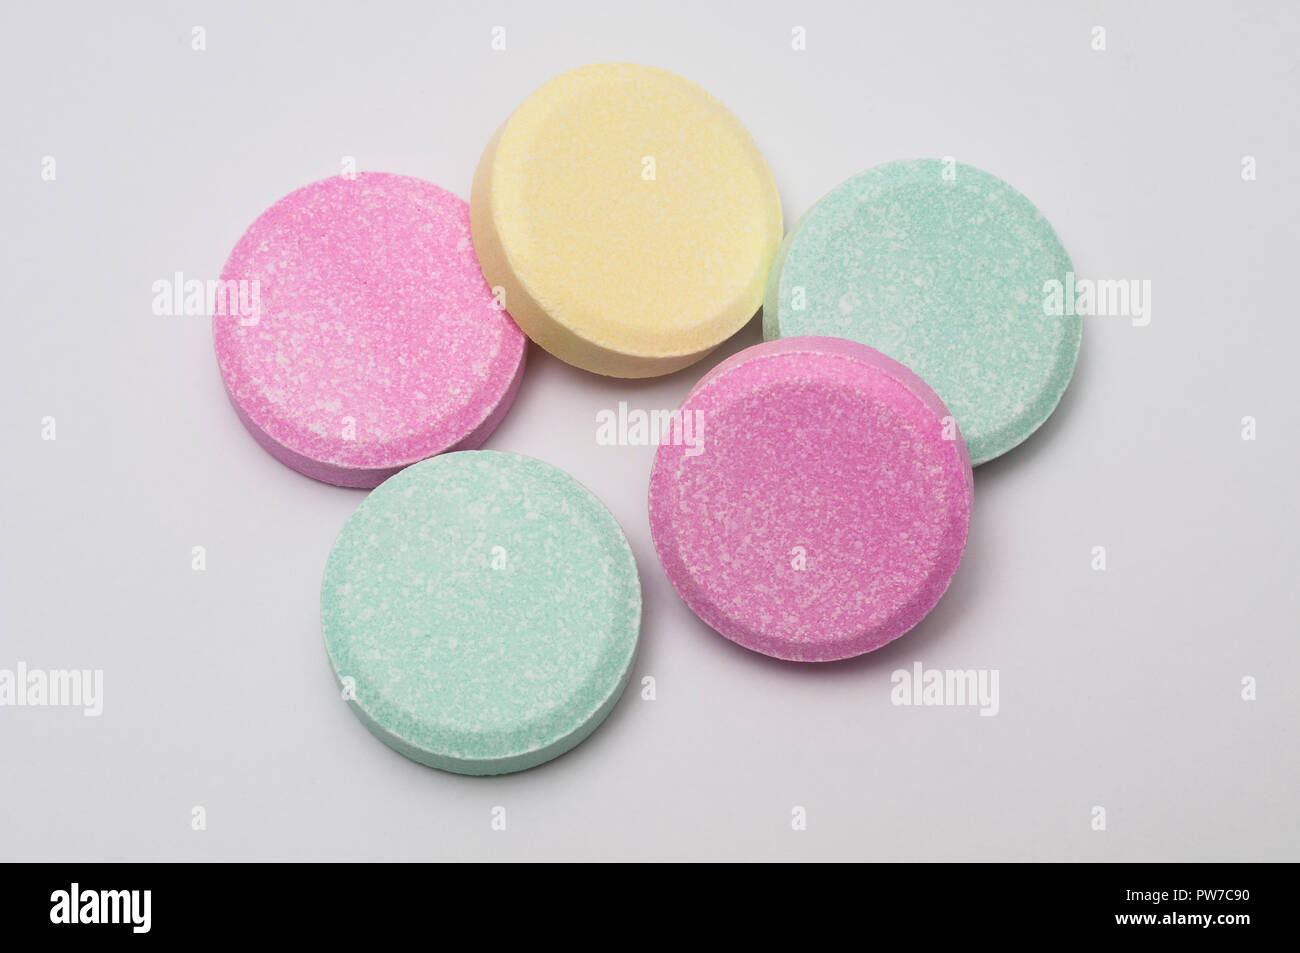 Assorted Fruit-Flavored Low-Cost Antacid Tablets - Stock Image